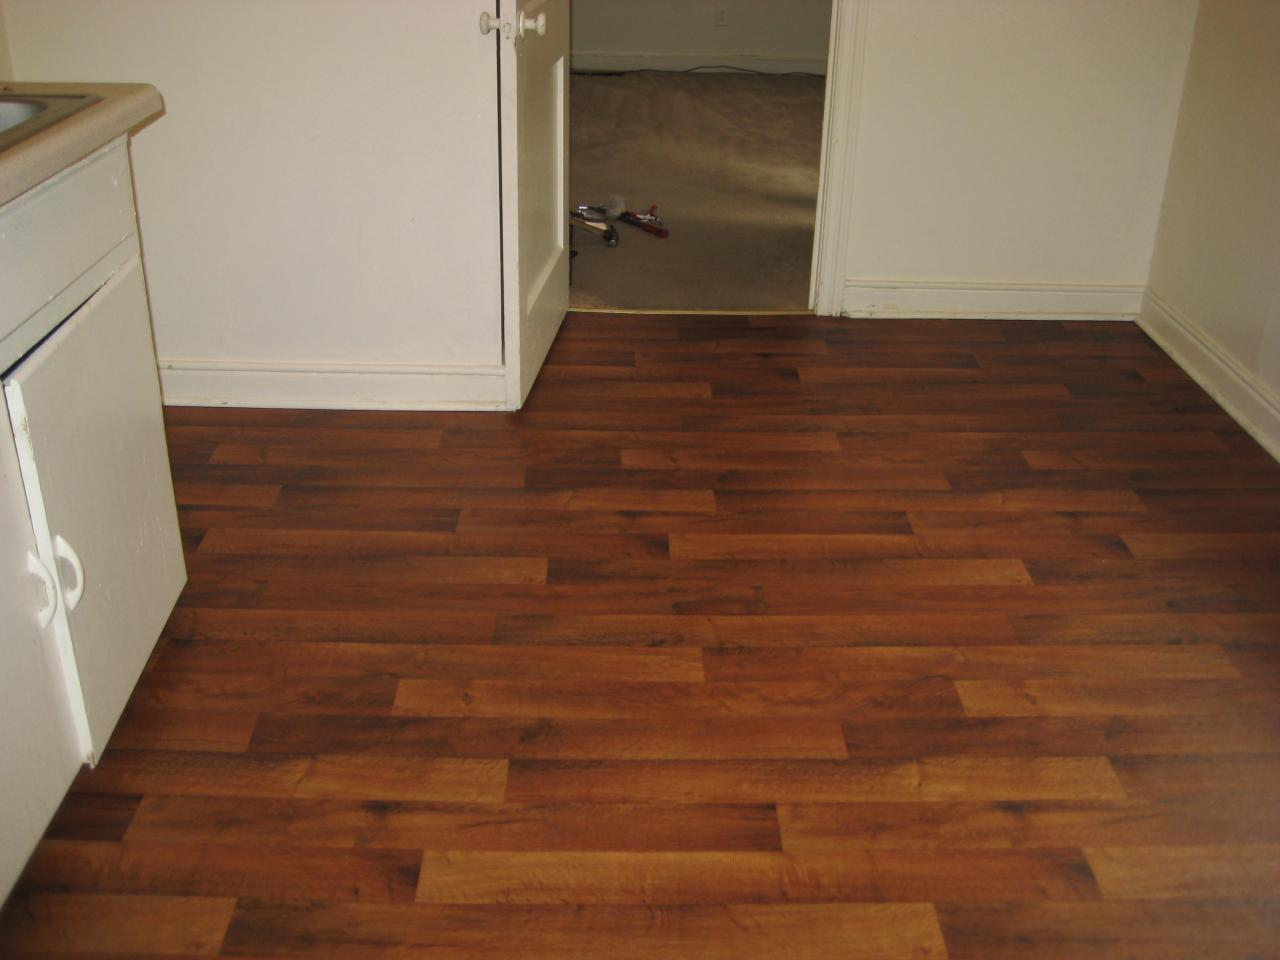 Linoleum flooring linoleum floor covering for Wood linoleum